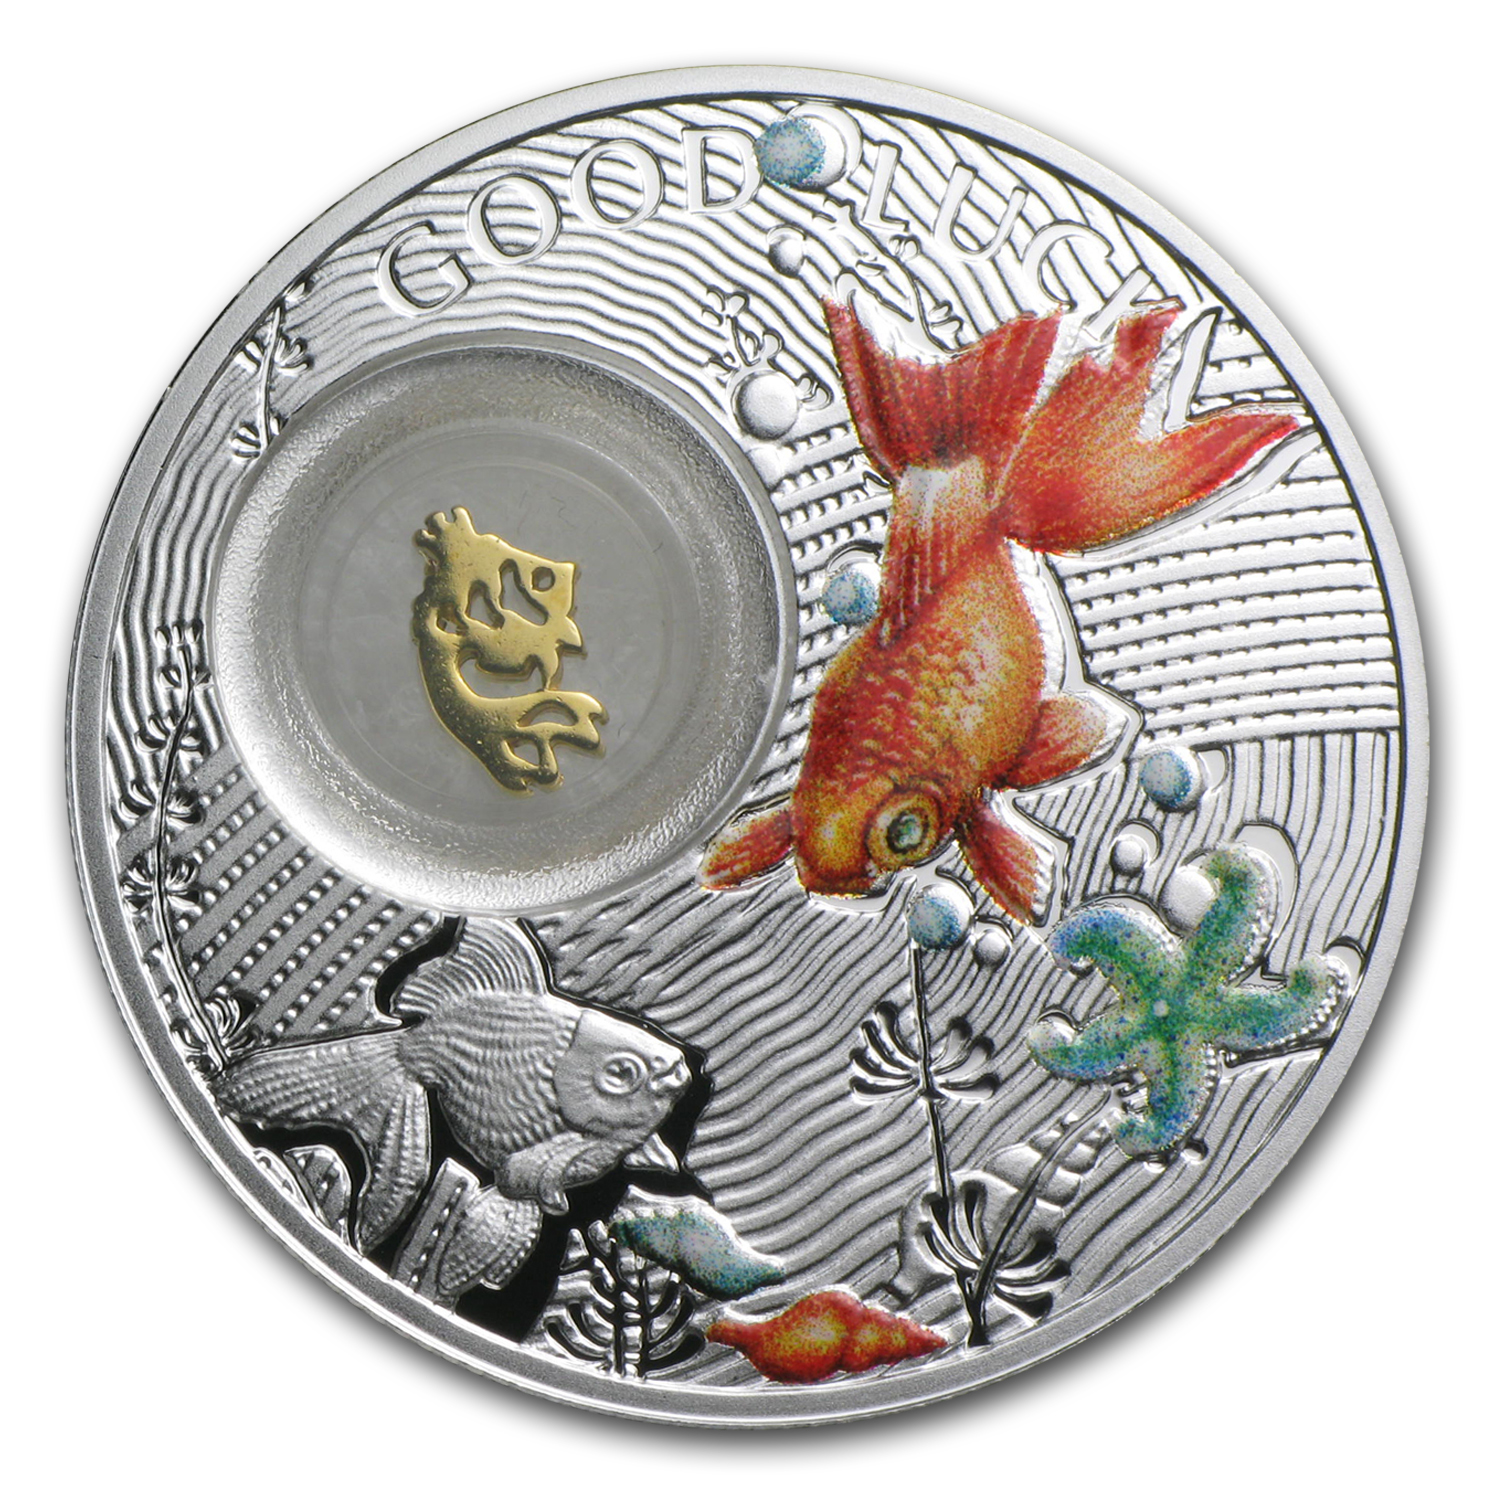 2014 Niue Silver $1 Good Luck Series Goldfish Proof